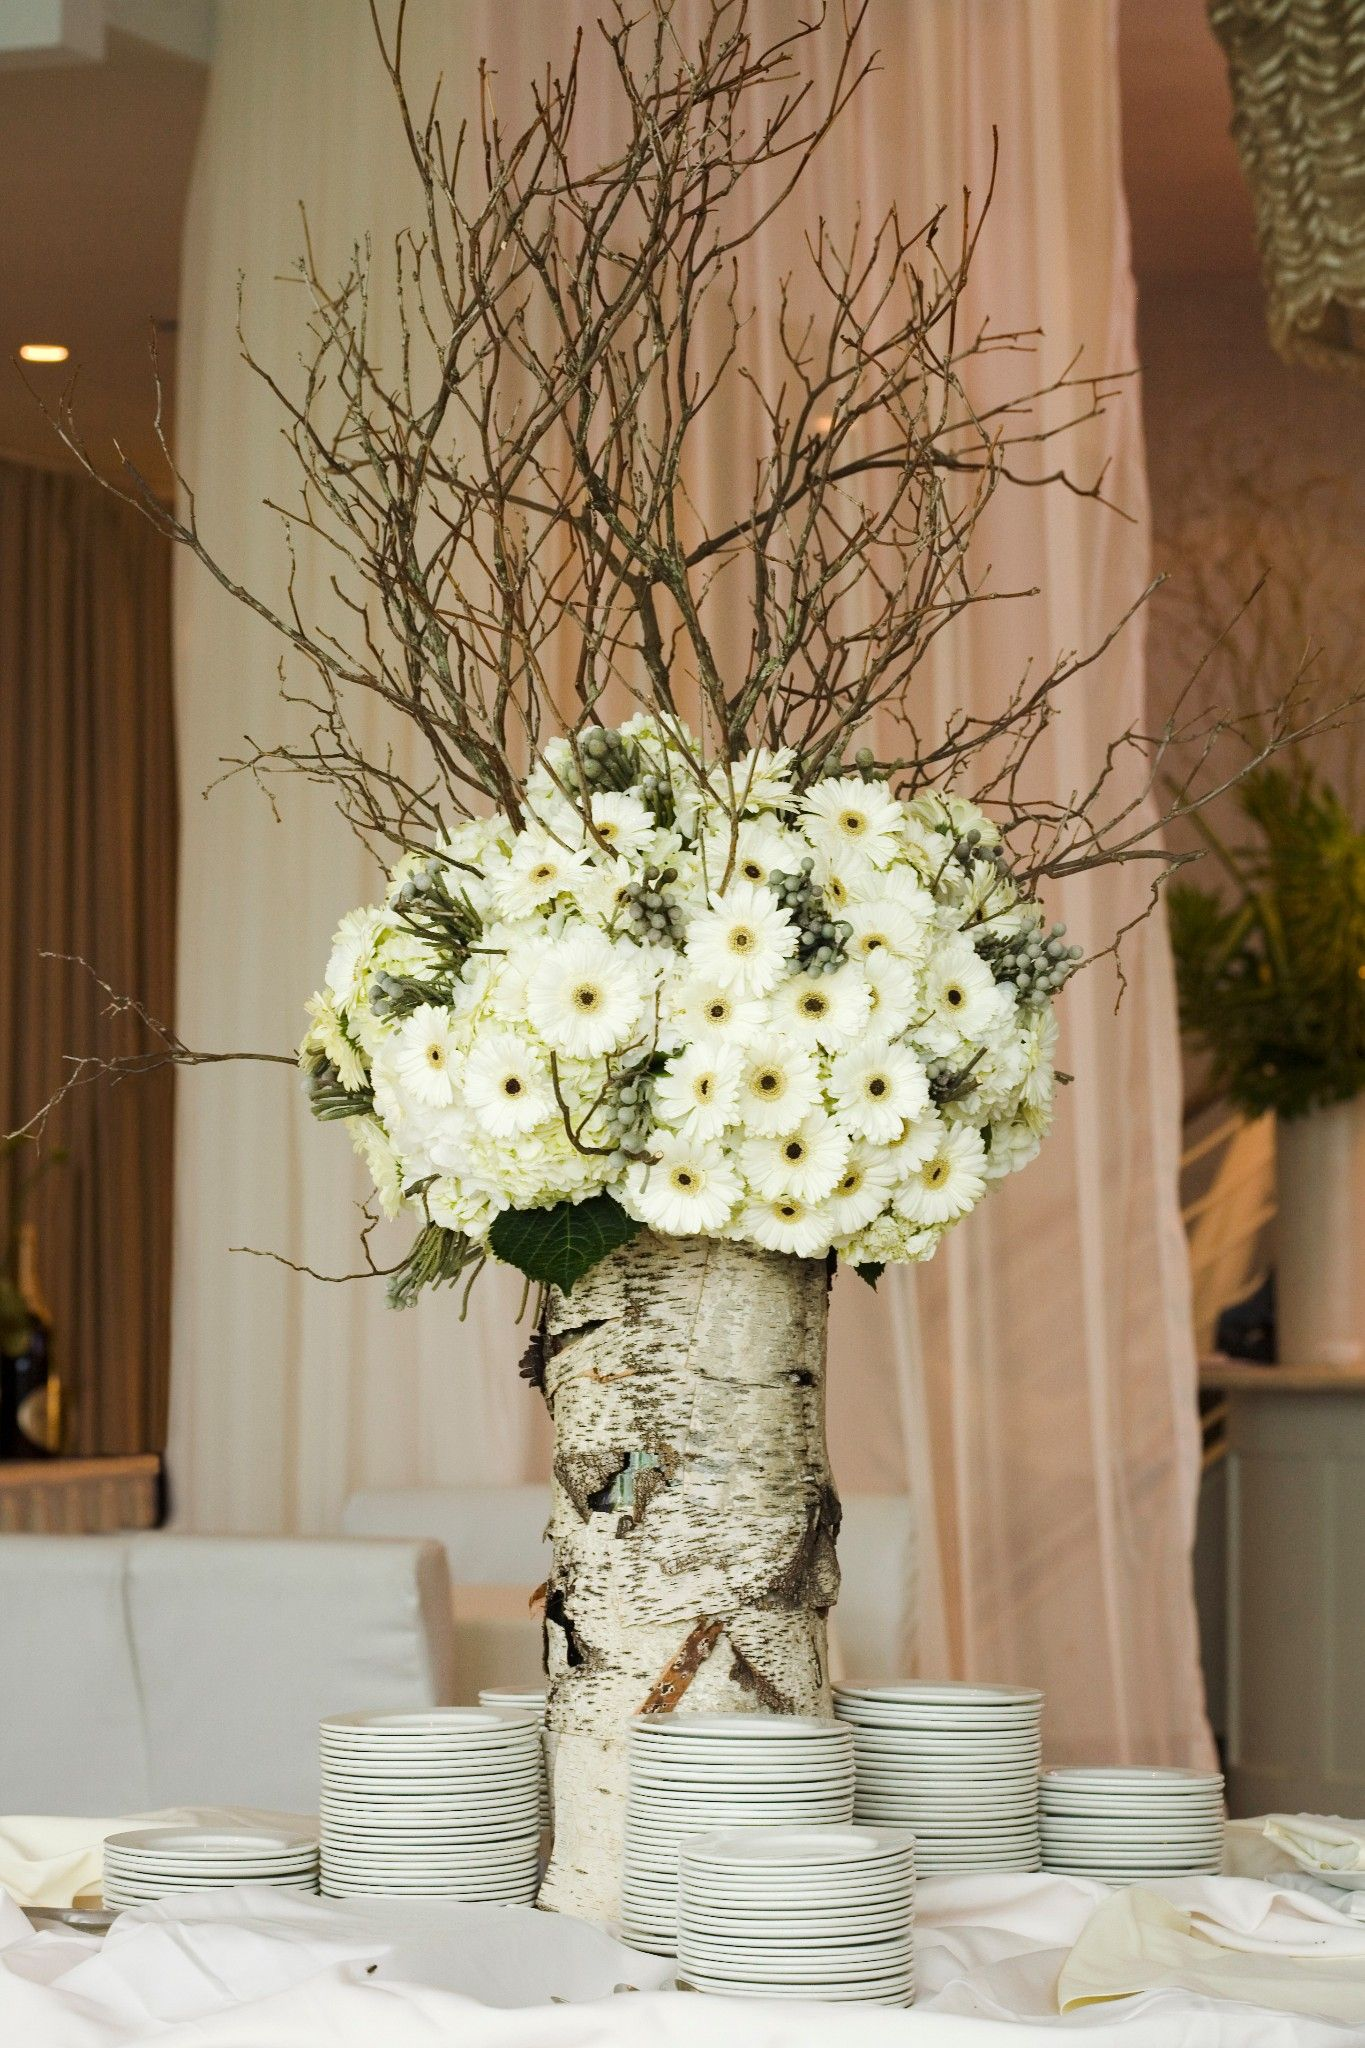 Awesome large arrangement birch log vase twigs hydrangea birch log vase twigs hydrangea gerbera daisies reviewsmspy